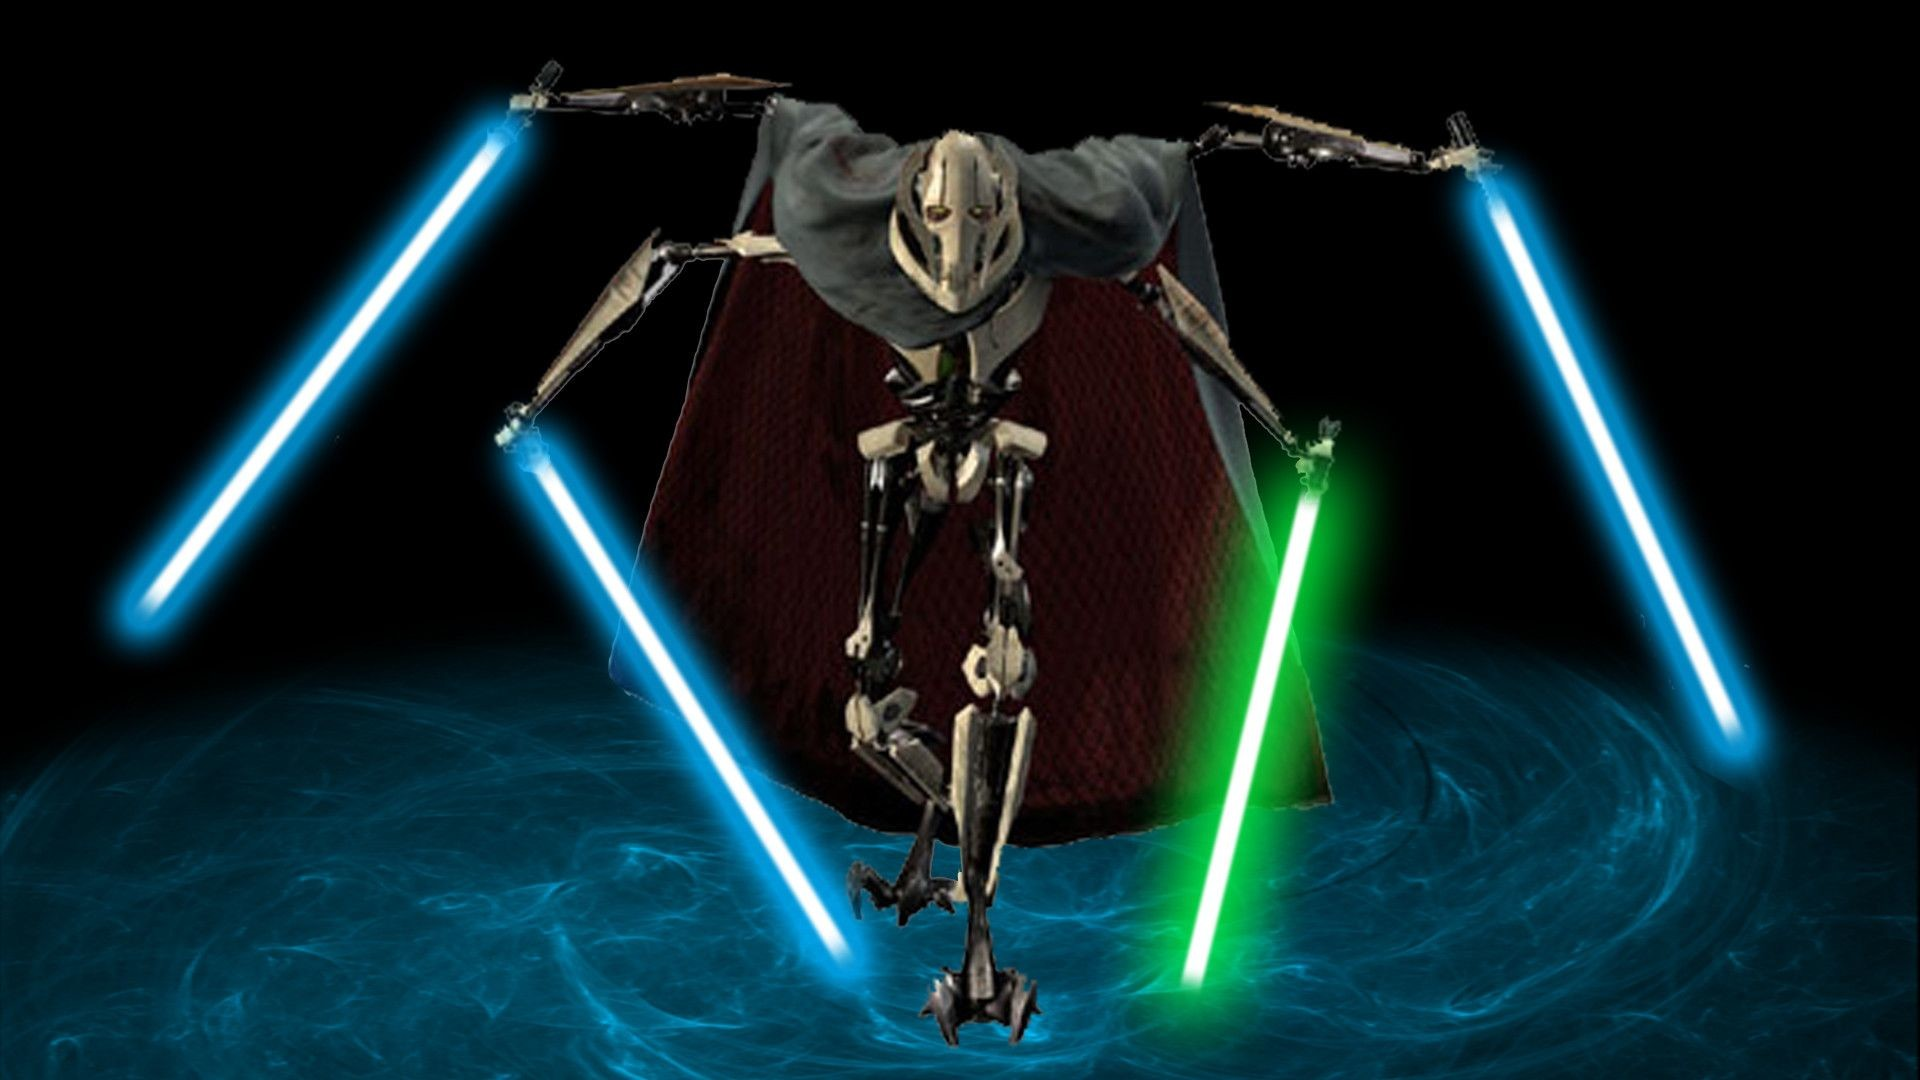 Download Wallpaper Superman 3d General Grievous Wallpaper 183 ①